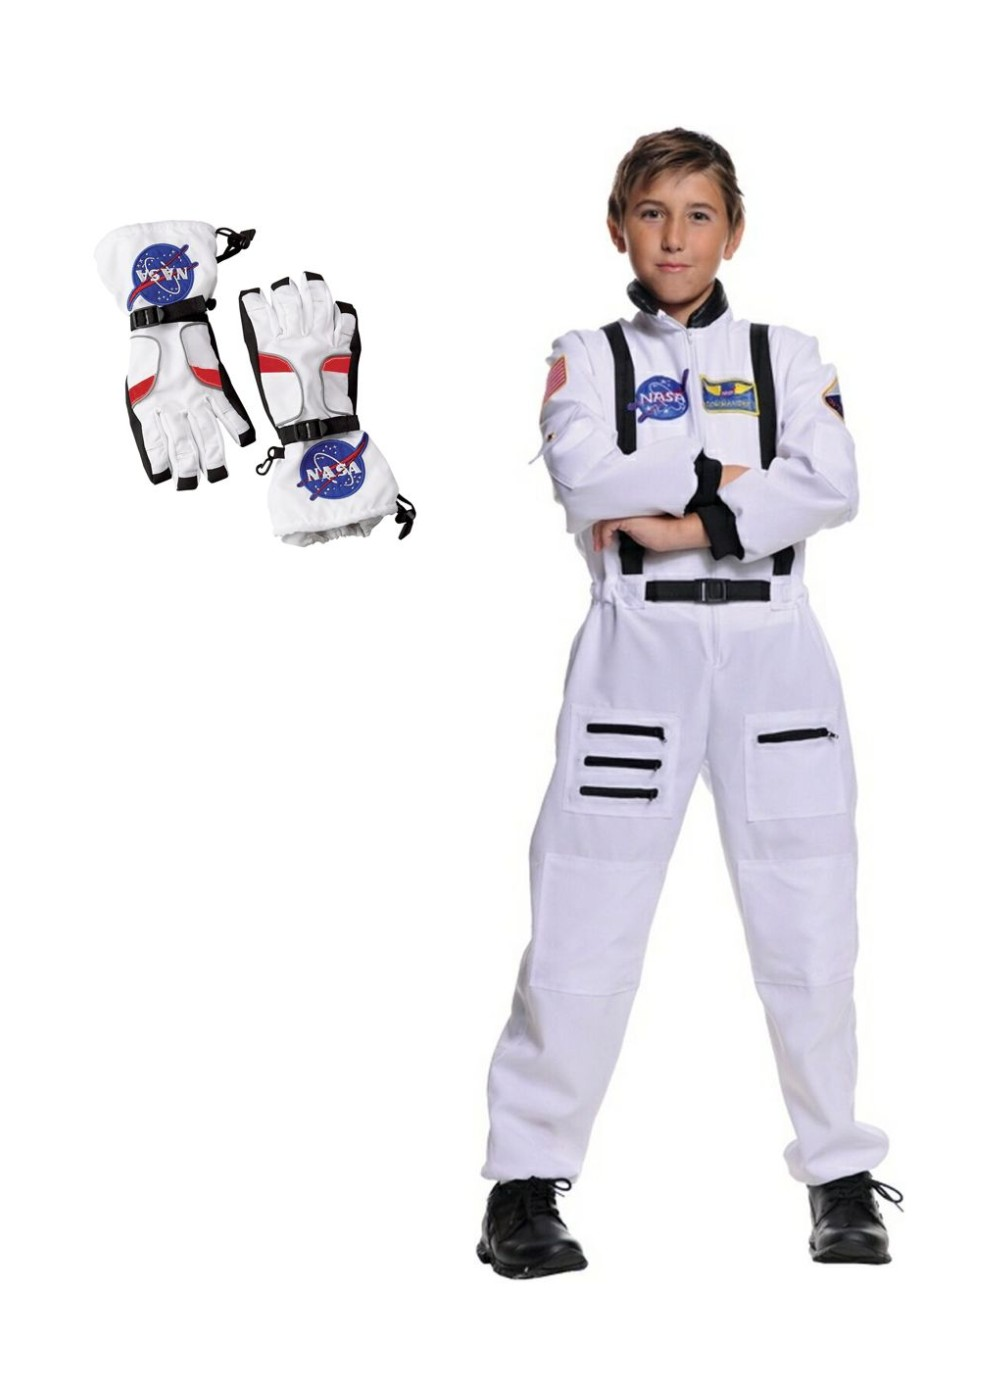 Boys Astronaut Costume And Gloves Set